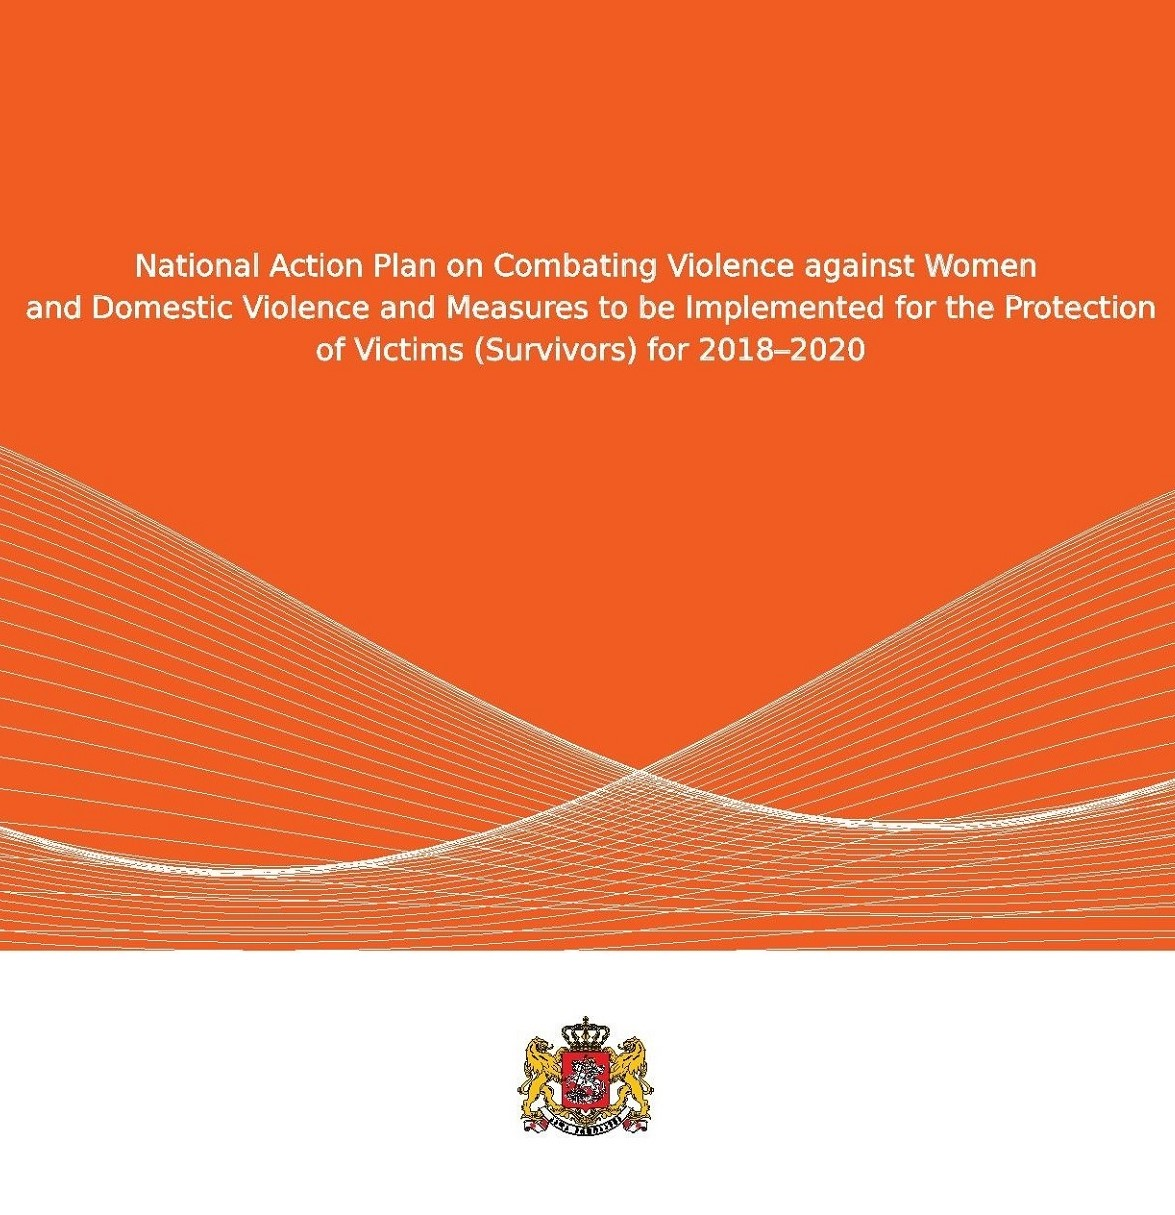 National Action Plan on Combating Violence against Women and Domestic Violence and Measures to be Implemented for the Protection of Victims (Survivors) for 2018-2020